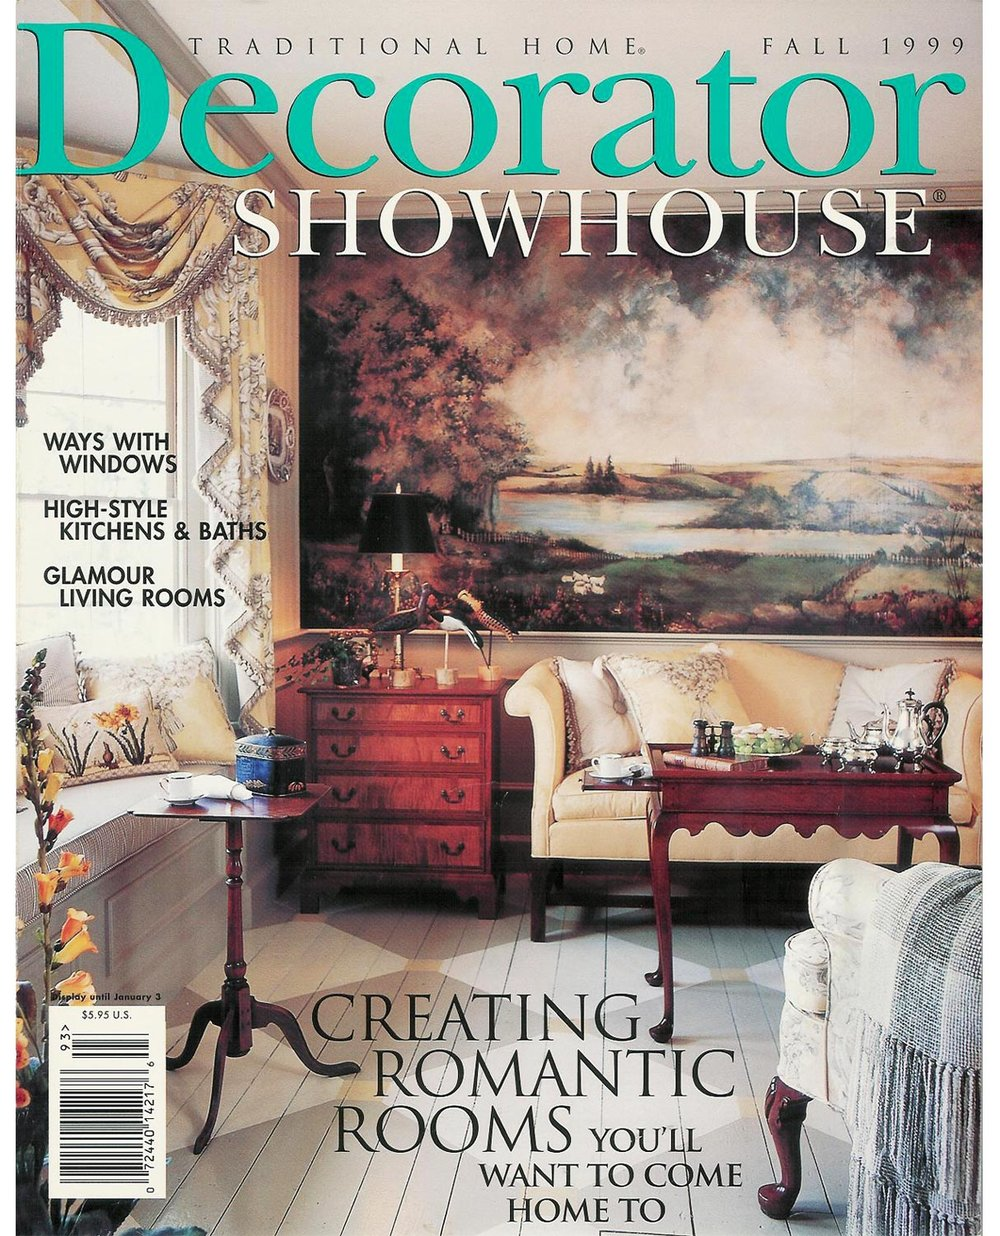 DecoratorShowhouse1999_cover.jpg